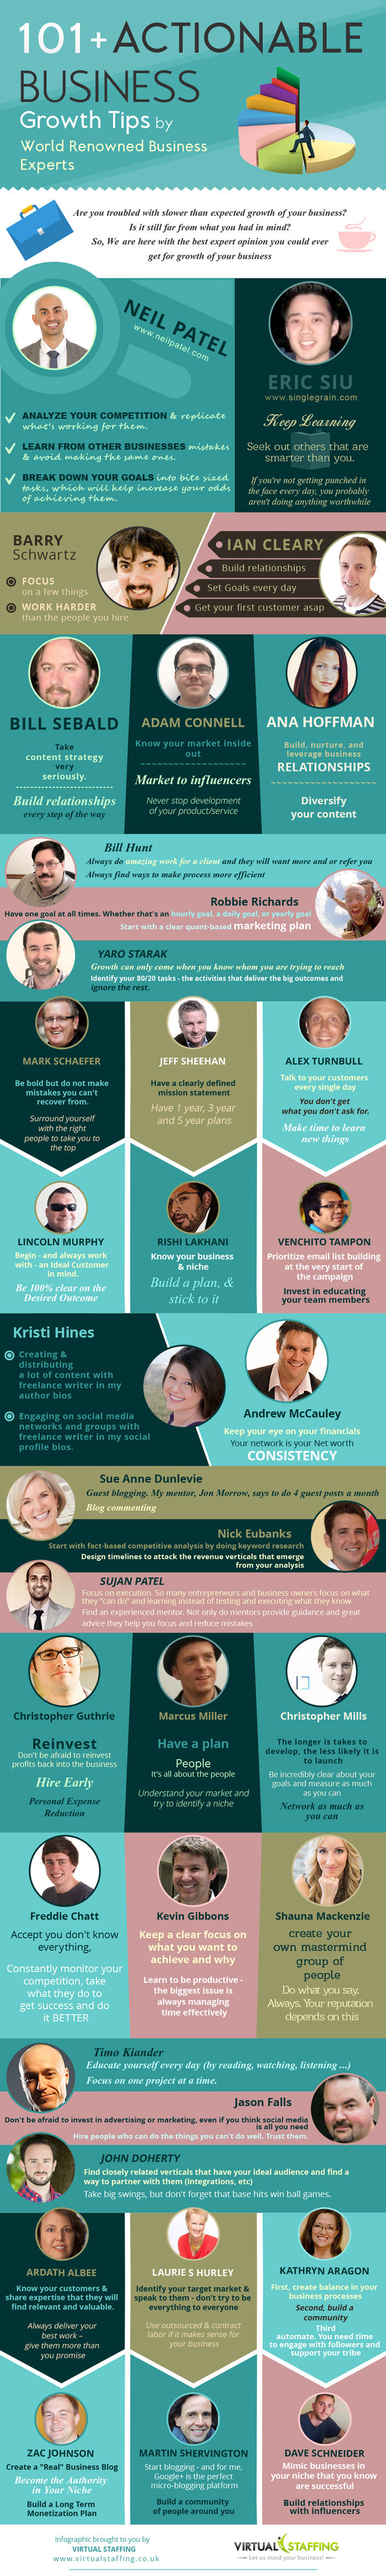 Business growth tips infographic